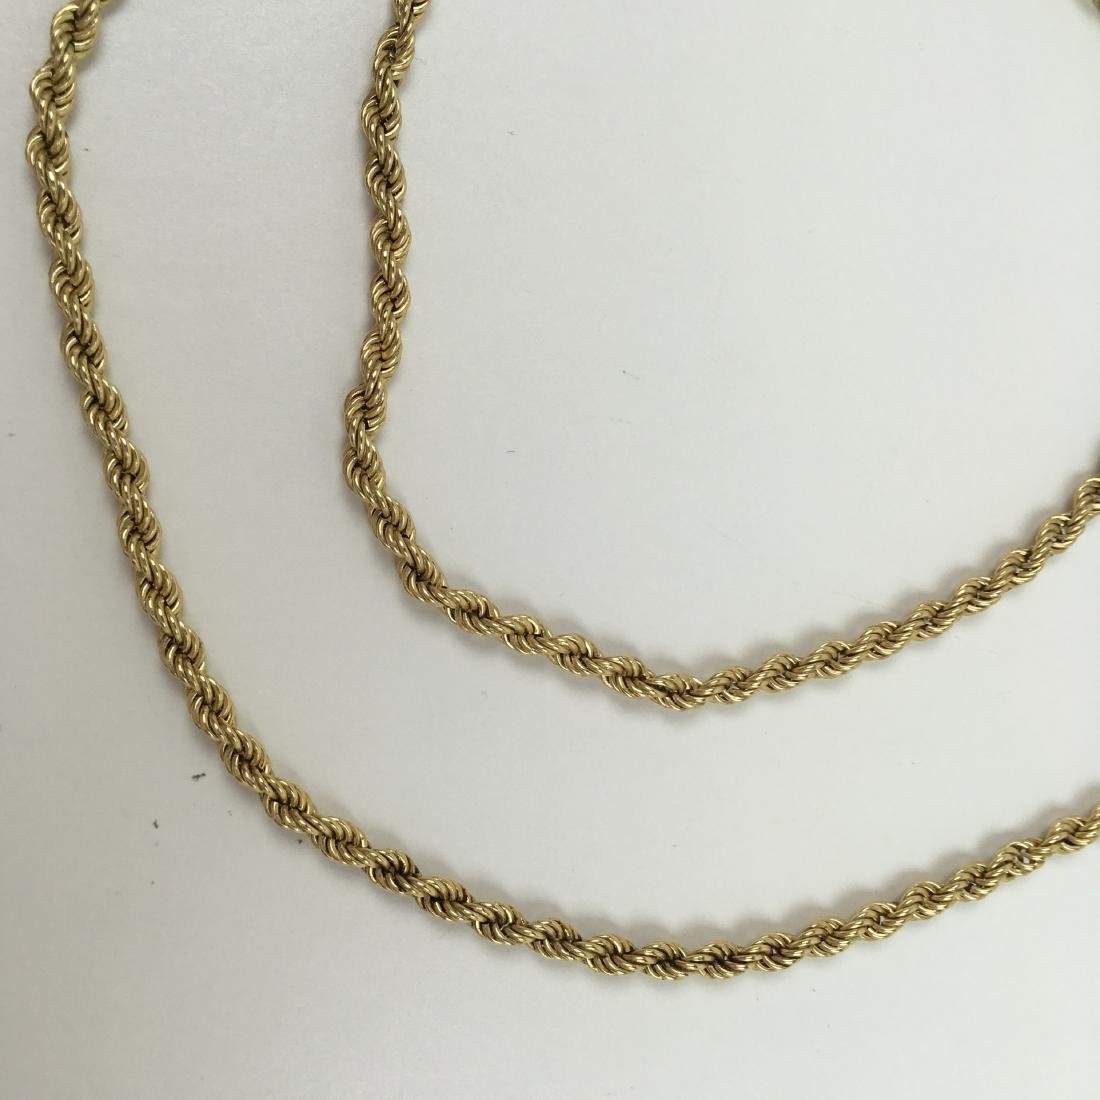 """14K YELLOW GOLD 31.75"""" ROPE NECKLACE - 8"""